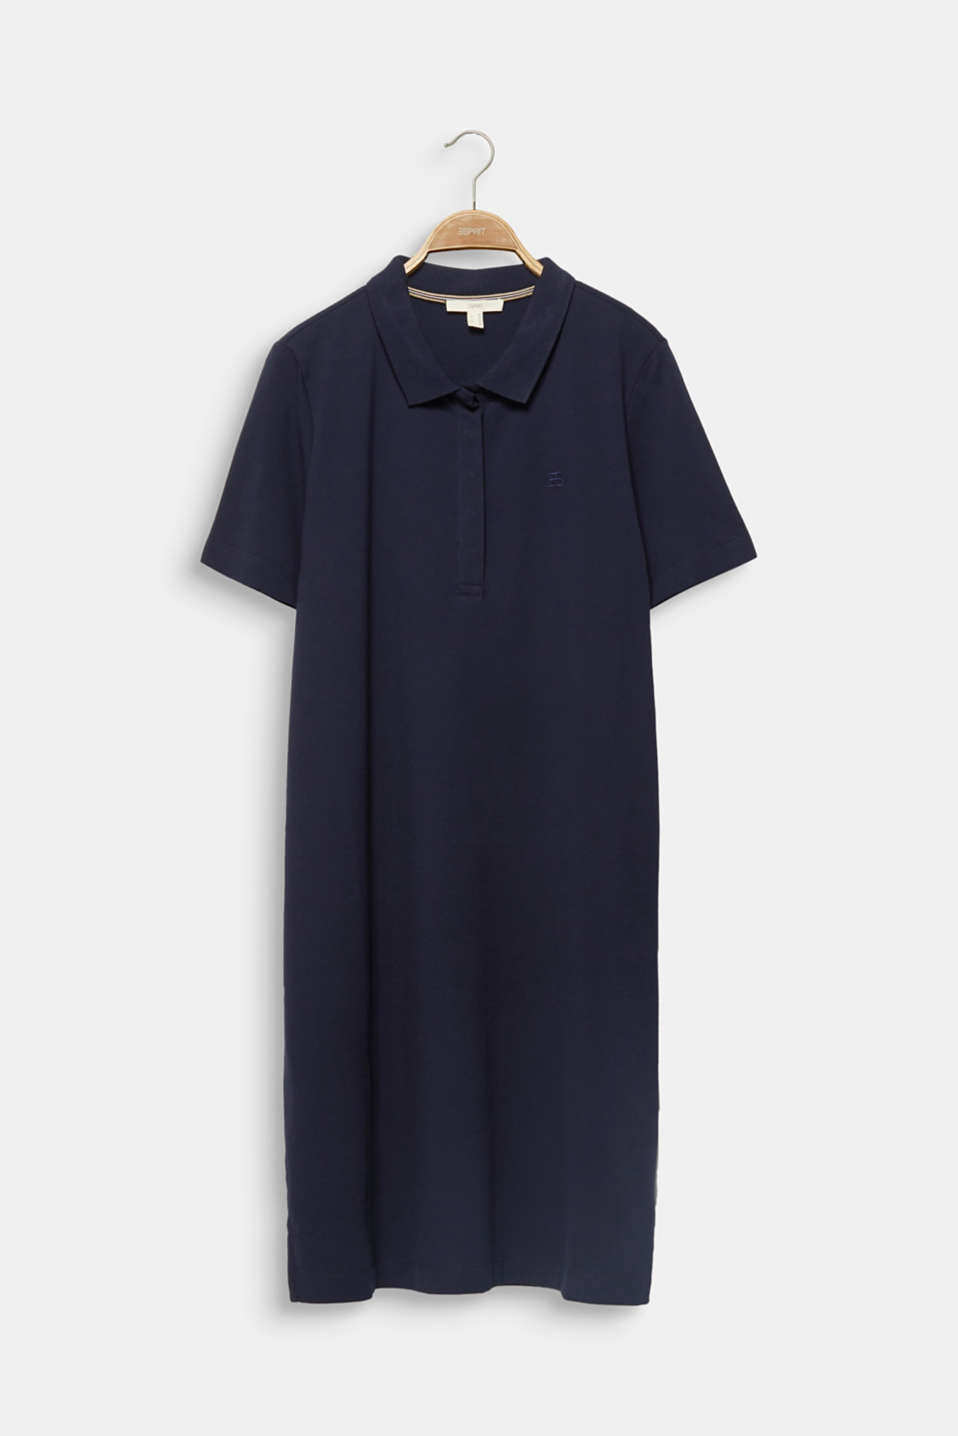 CURVY polo dress made of piqué, NAVY, detail image number 6